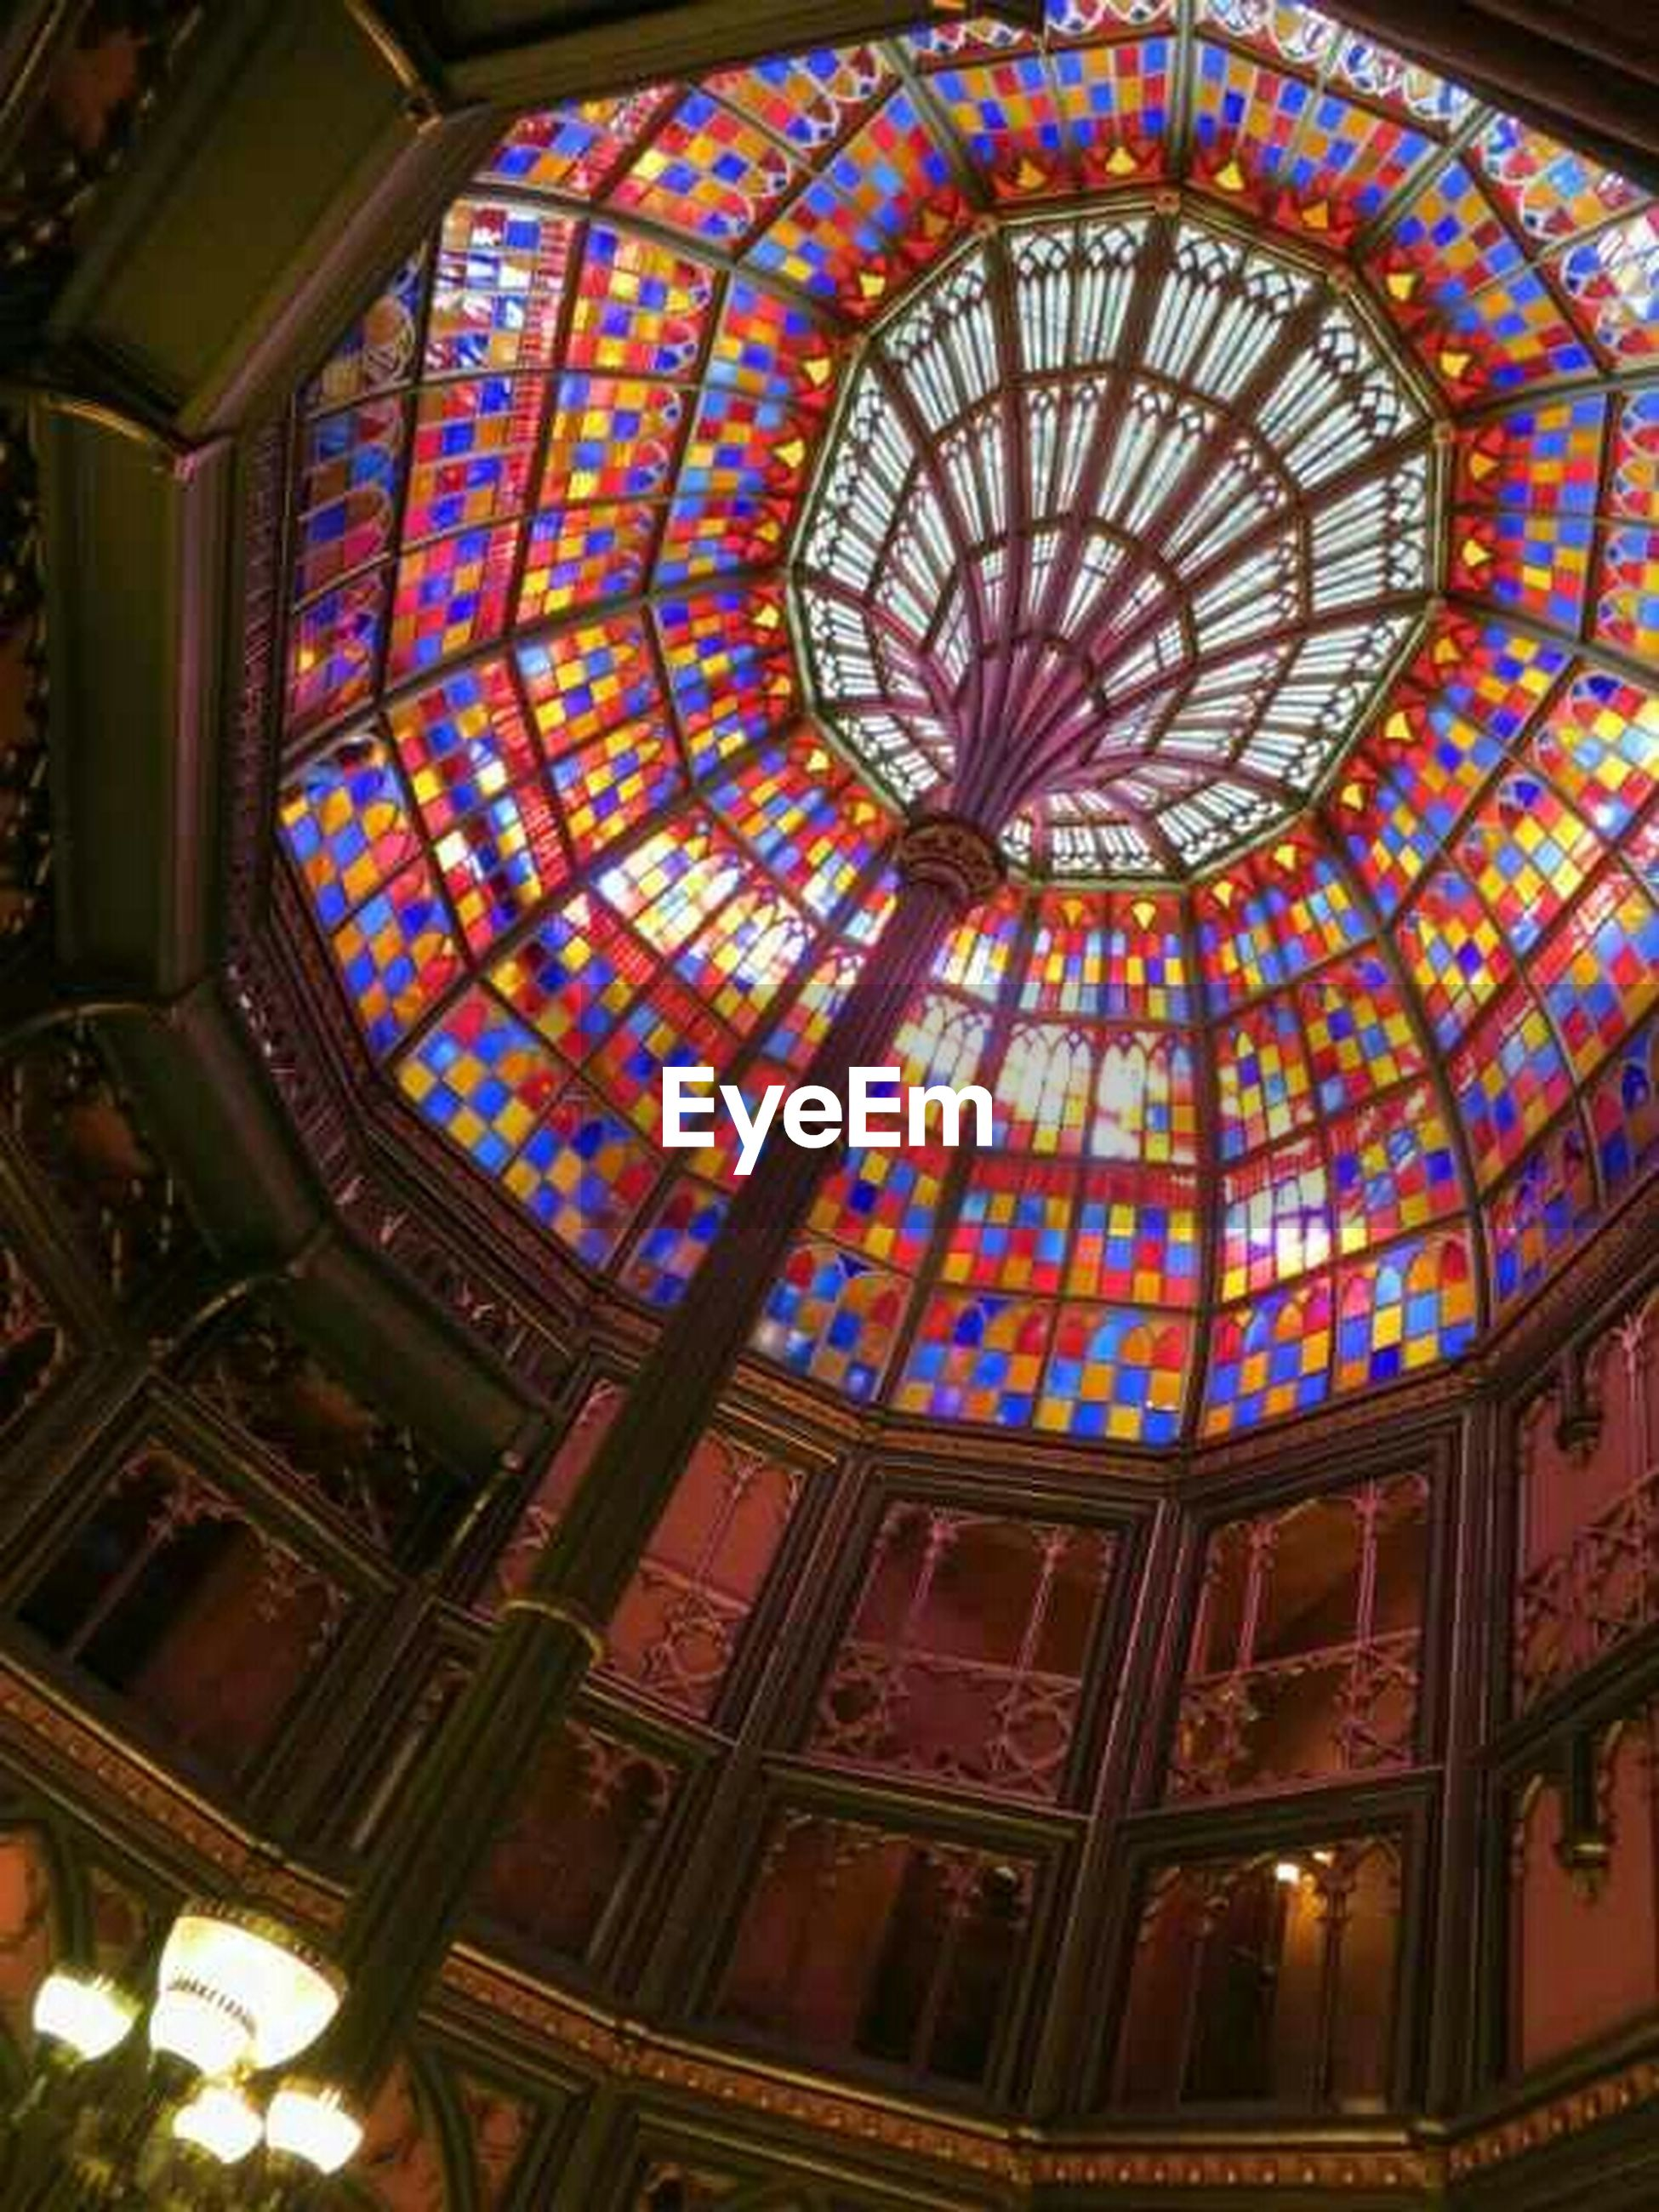 indoors, low angle view, ceiling, architecture, built structure, place of worship, design, religion, ornate, spirituality, pattern, church, stained glass, architectural feature, art and craft, art, dome, window, skylight